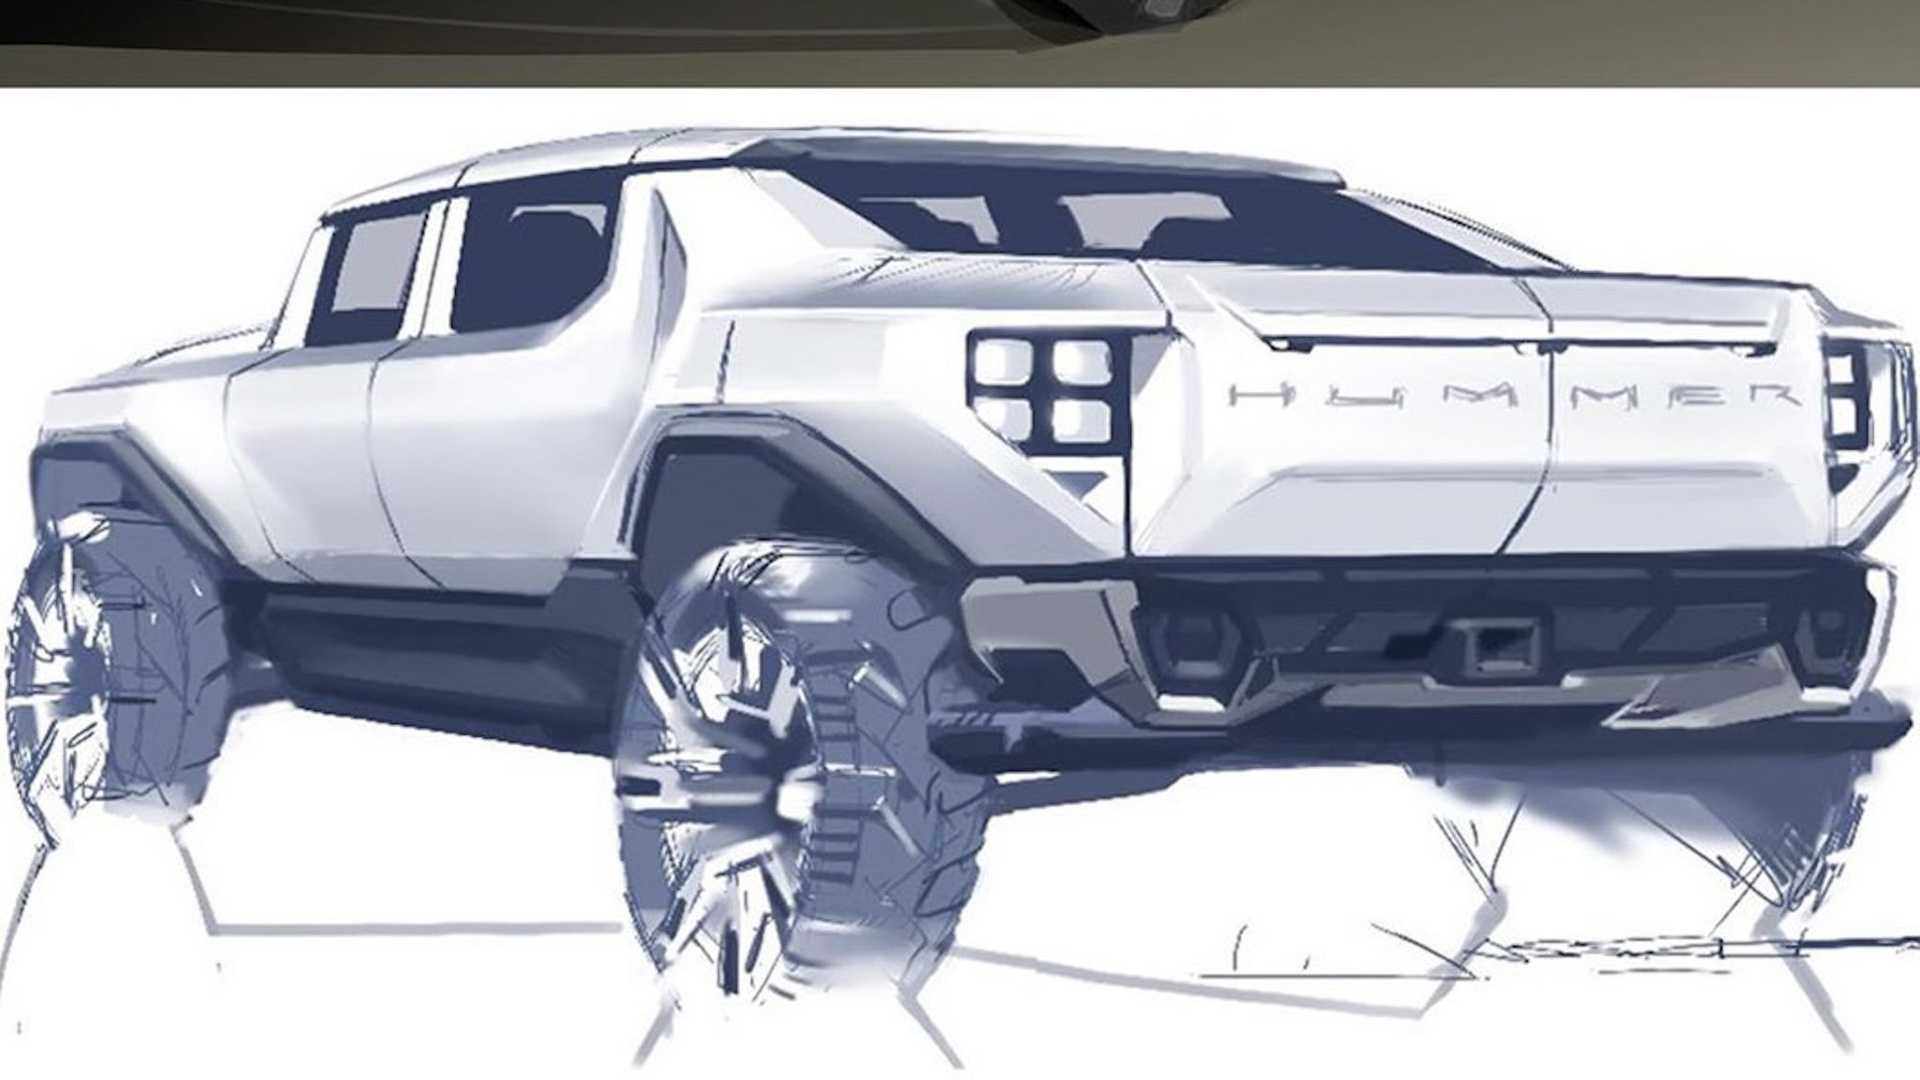 2022-gmc-hummer-ev-sketches